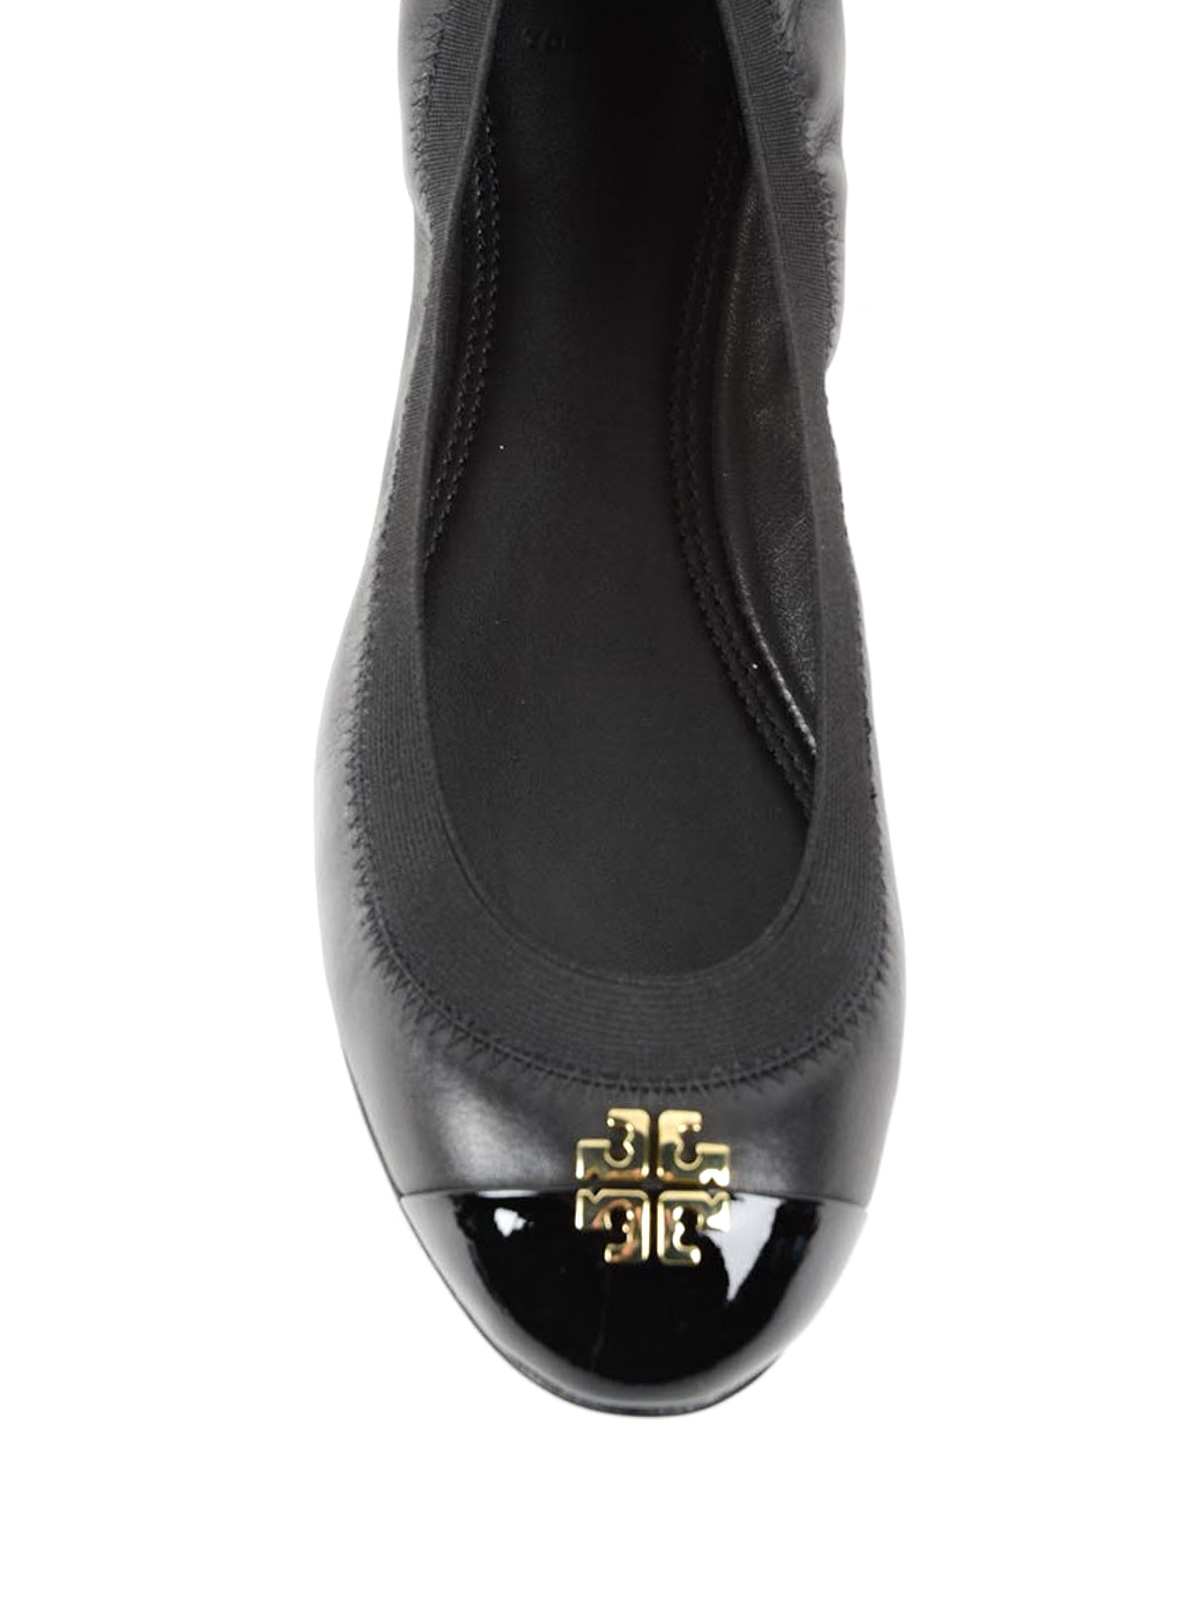 62f80590a2e Tory Burch - Patent leather toe Jolie ballerinas - flat shoes ...